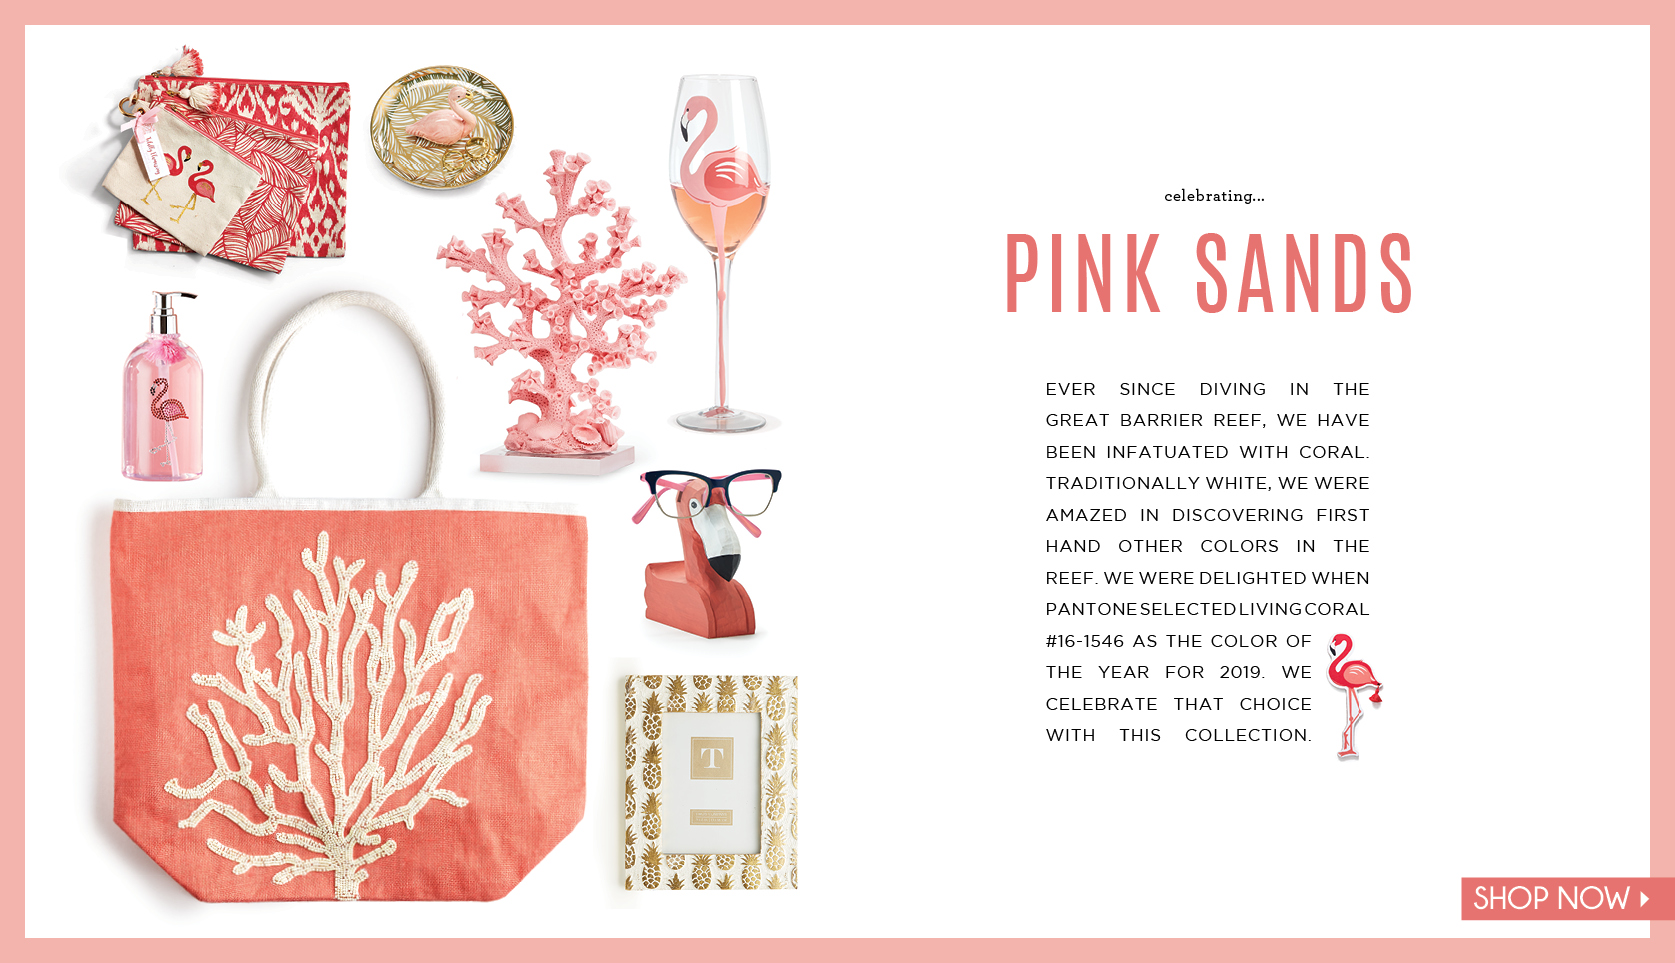 Pink Sands Collection image